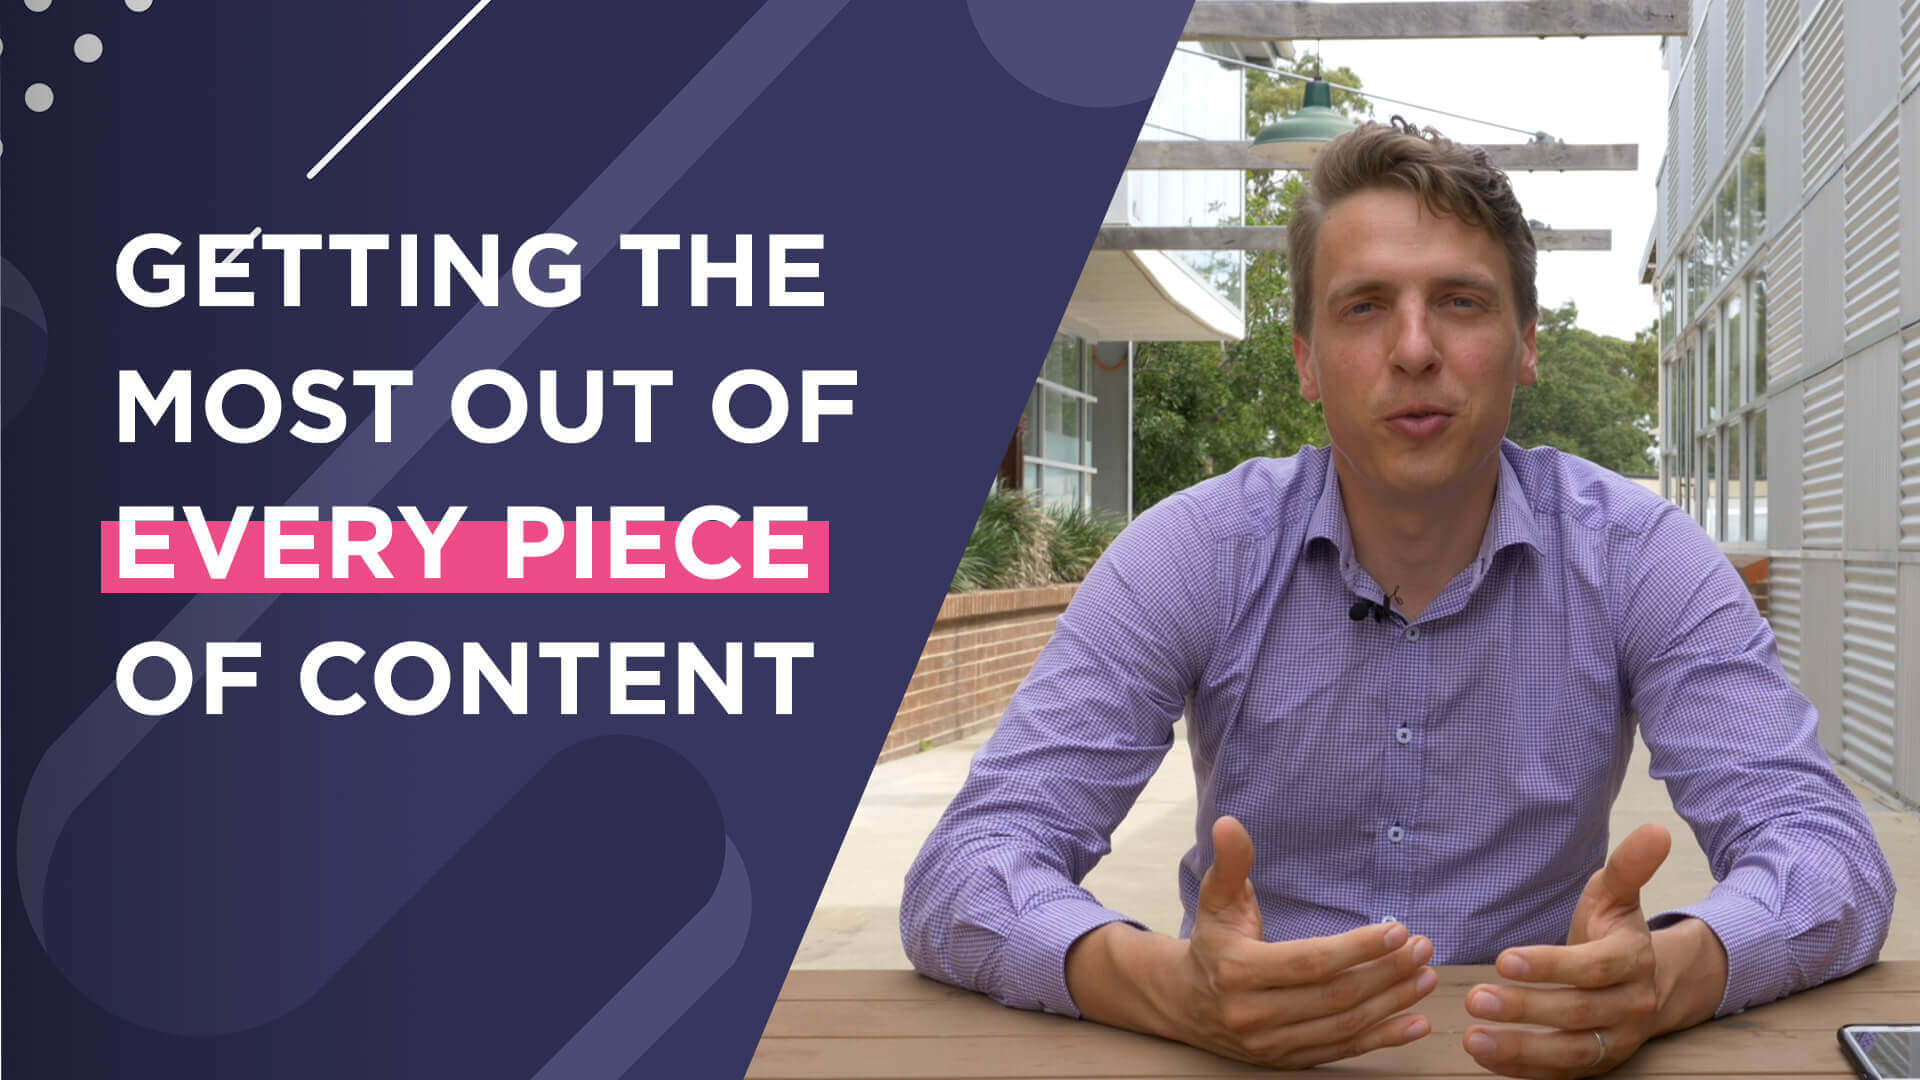 How to Get the Most out of Every Piece of Content